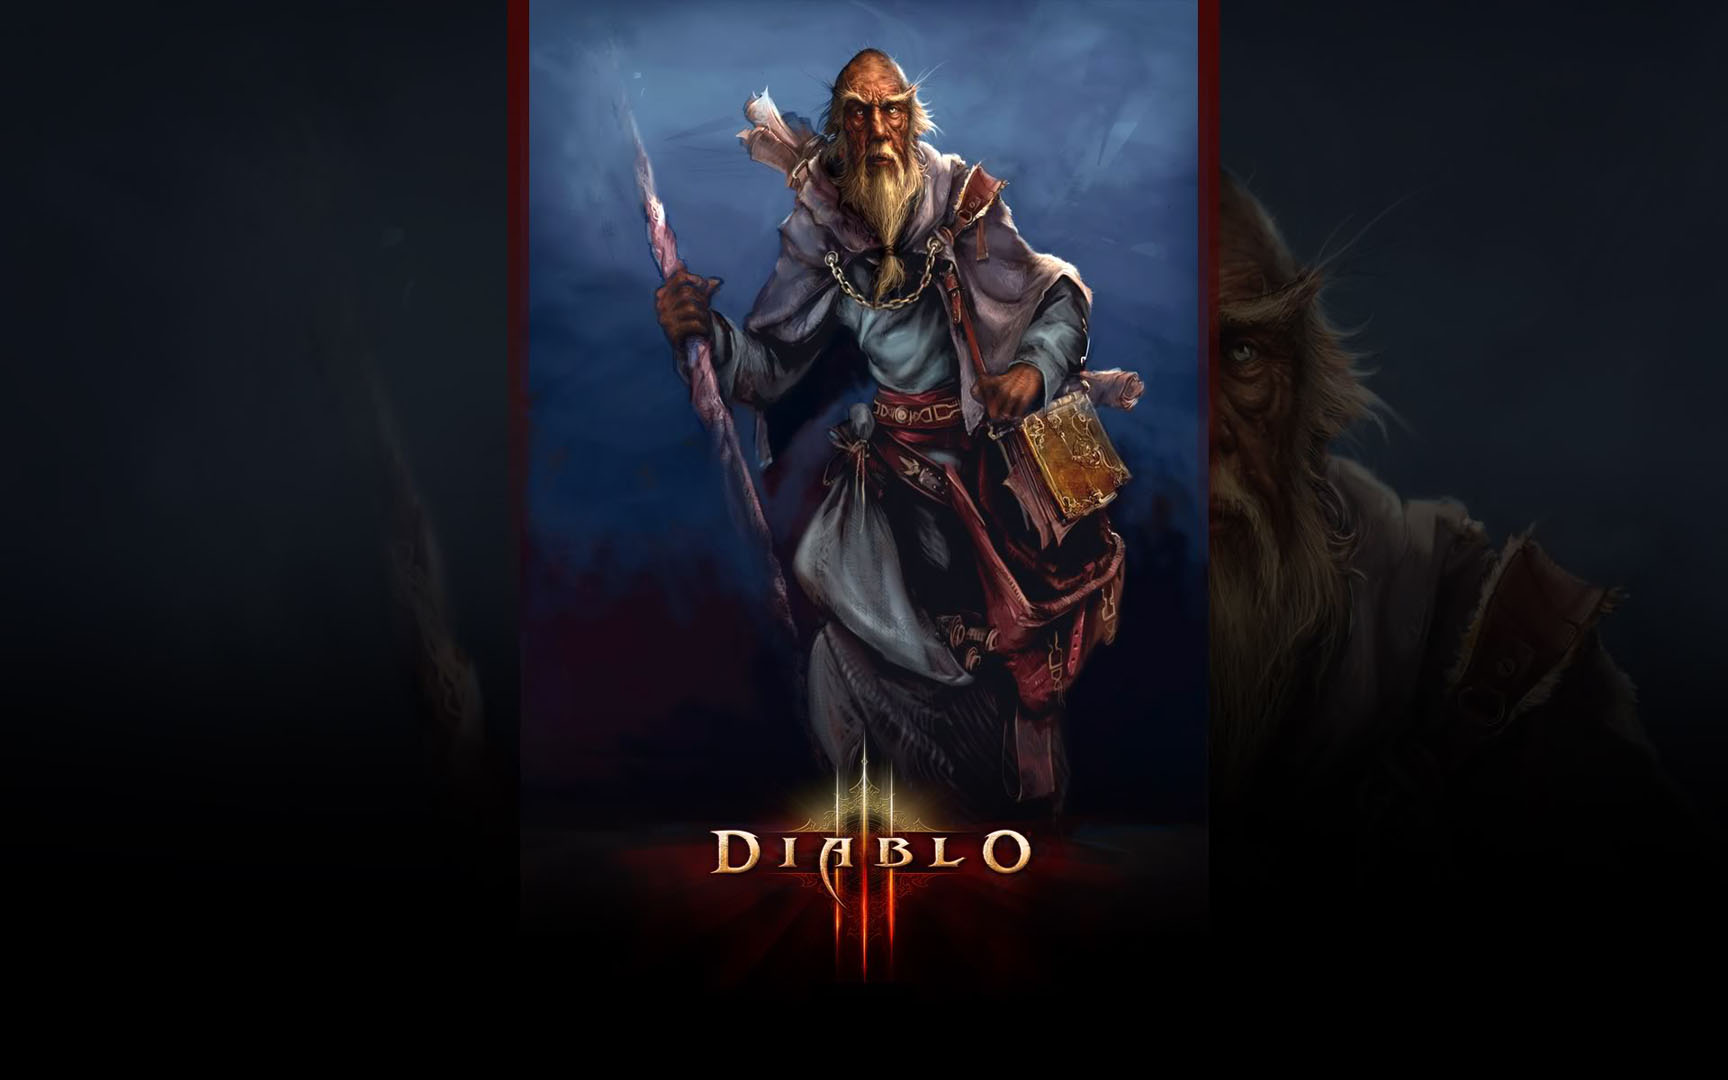 diablo wizard wallpaper related keywords suggestions